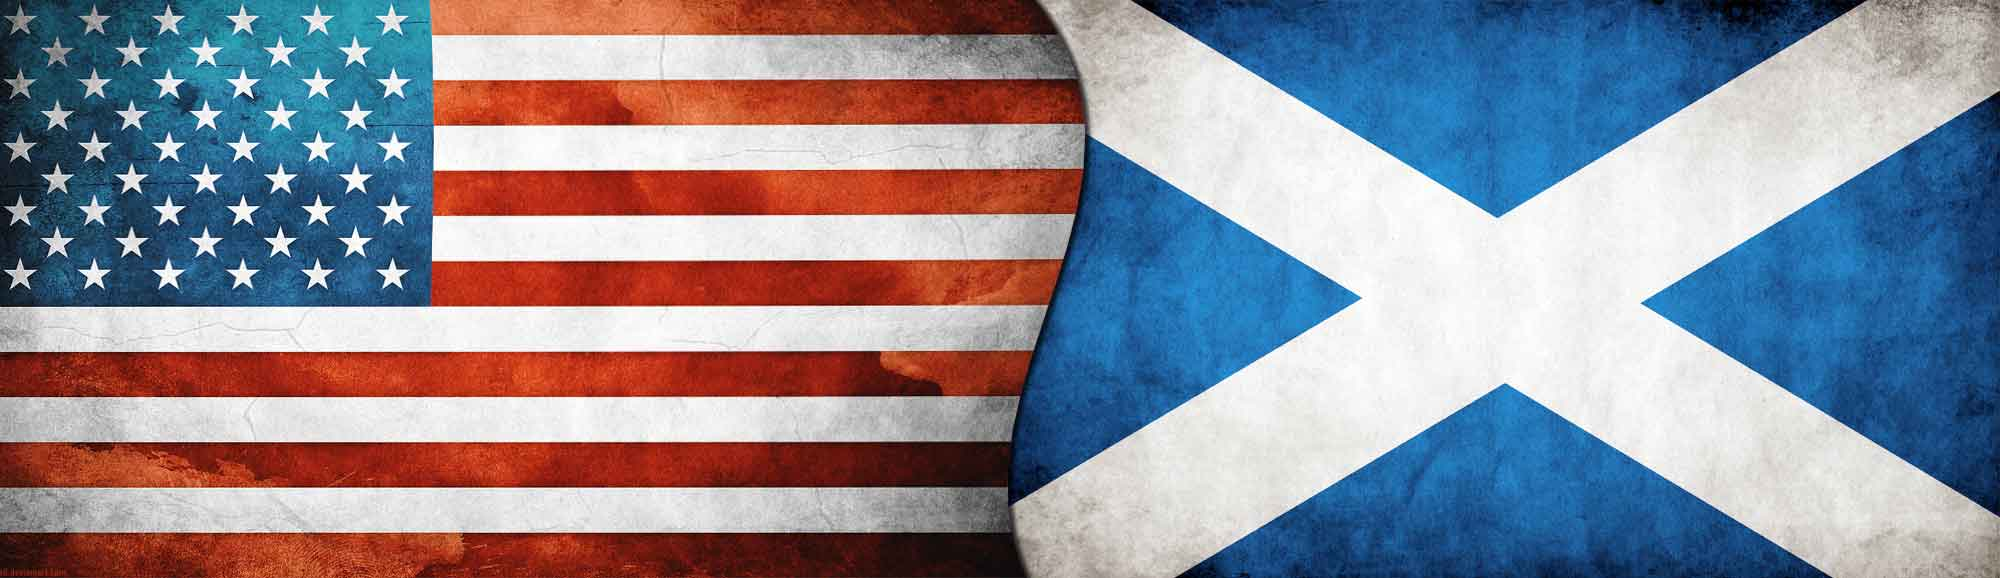 American and Scotland flags